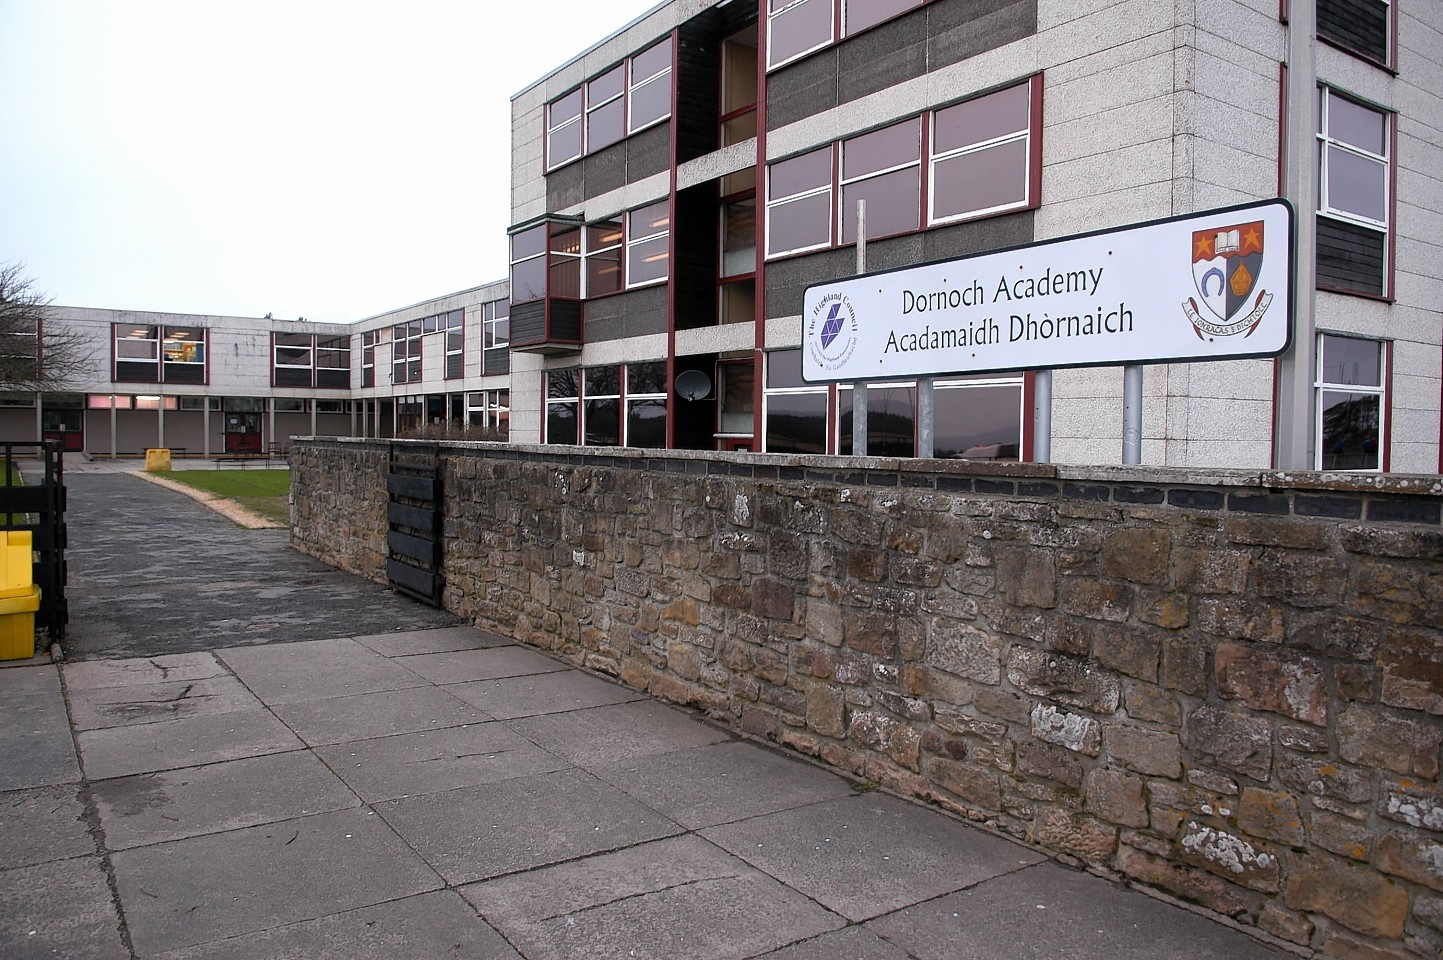 The new sports centre will be built in the grounds of Dornoch Academy